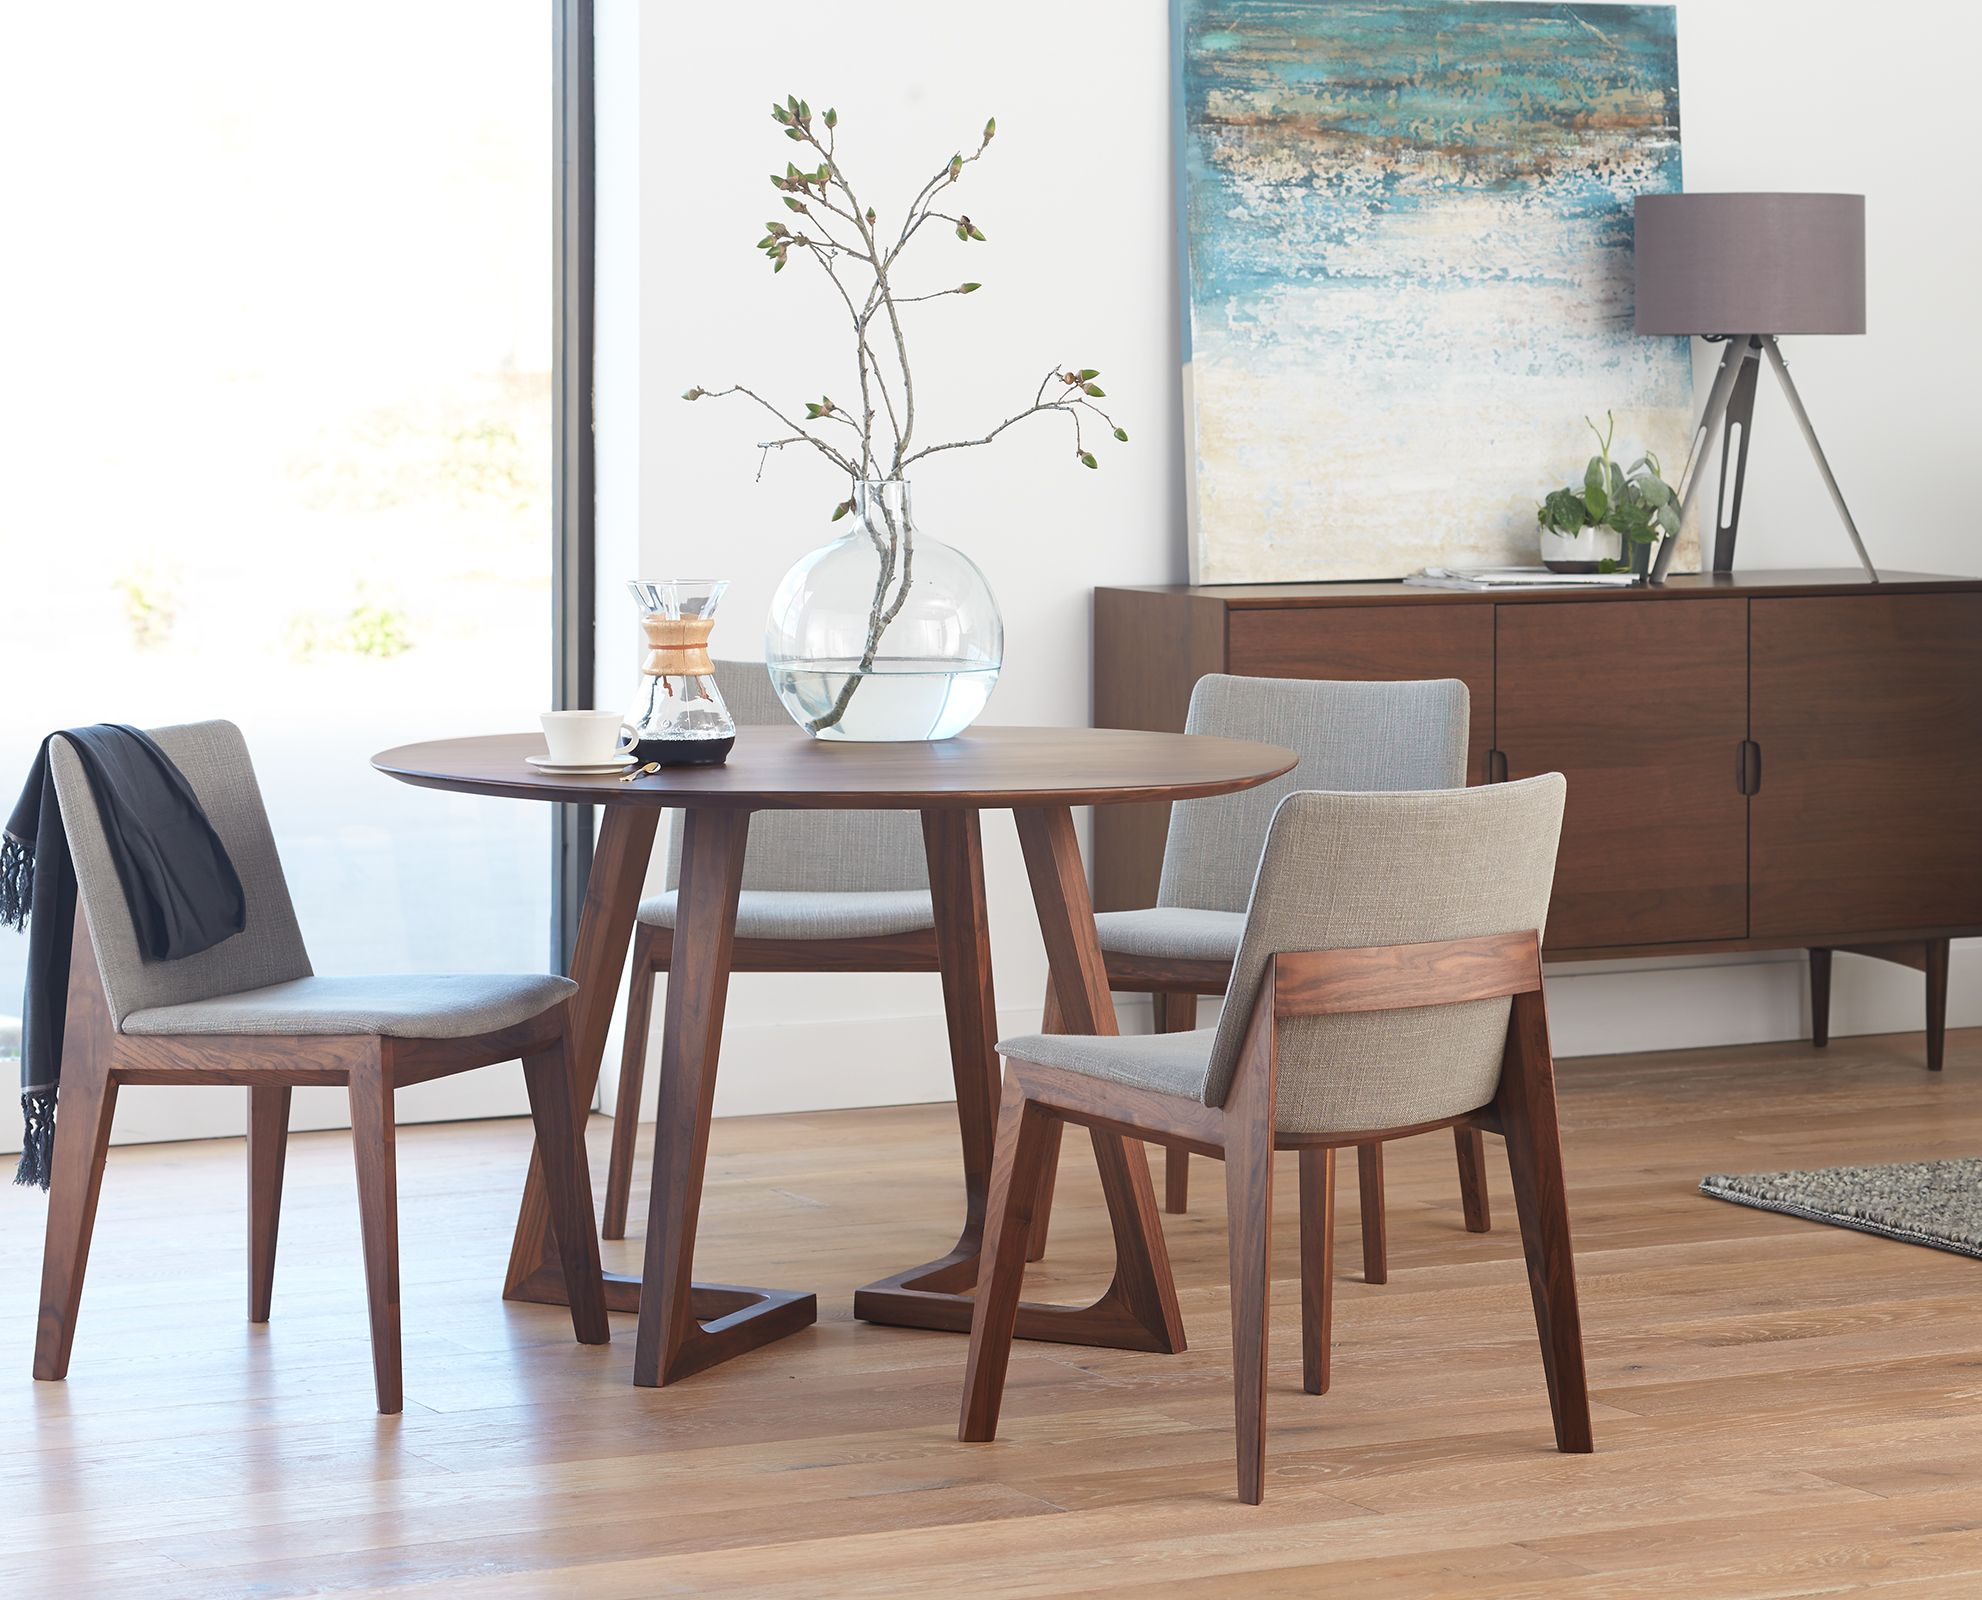 Round Dining Table And Chairs Round Table And Chairs From Dania Condo Pinterest